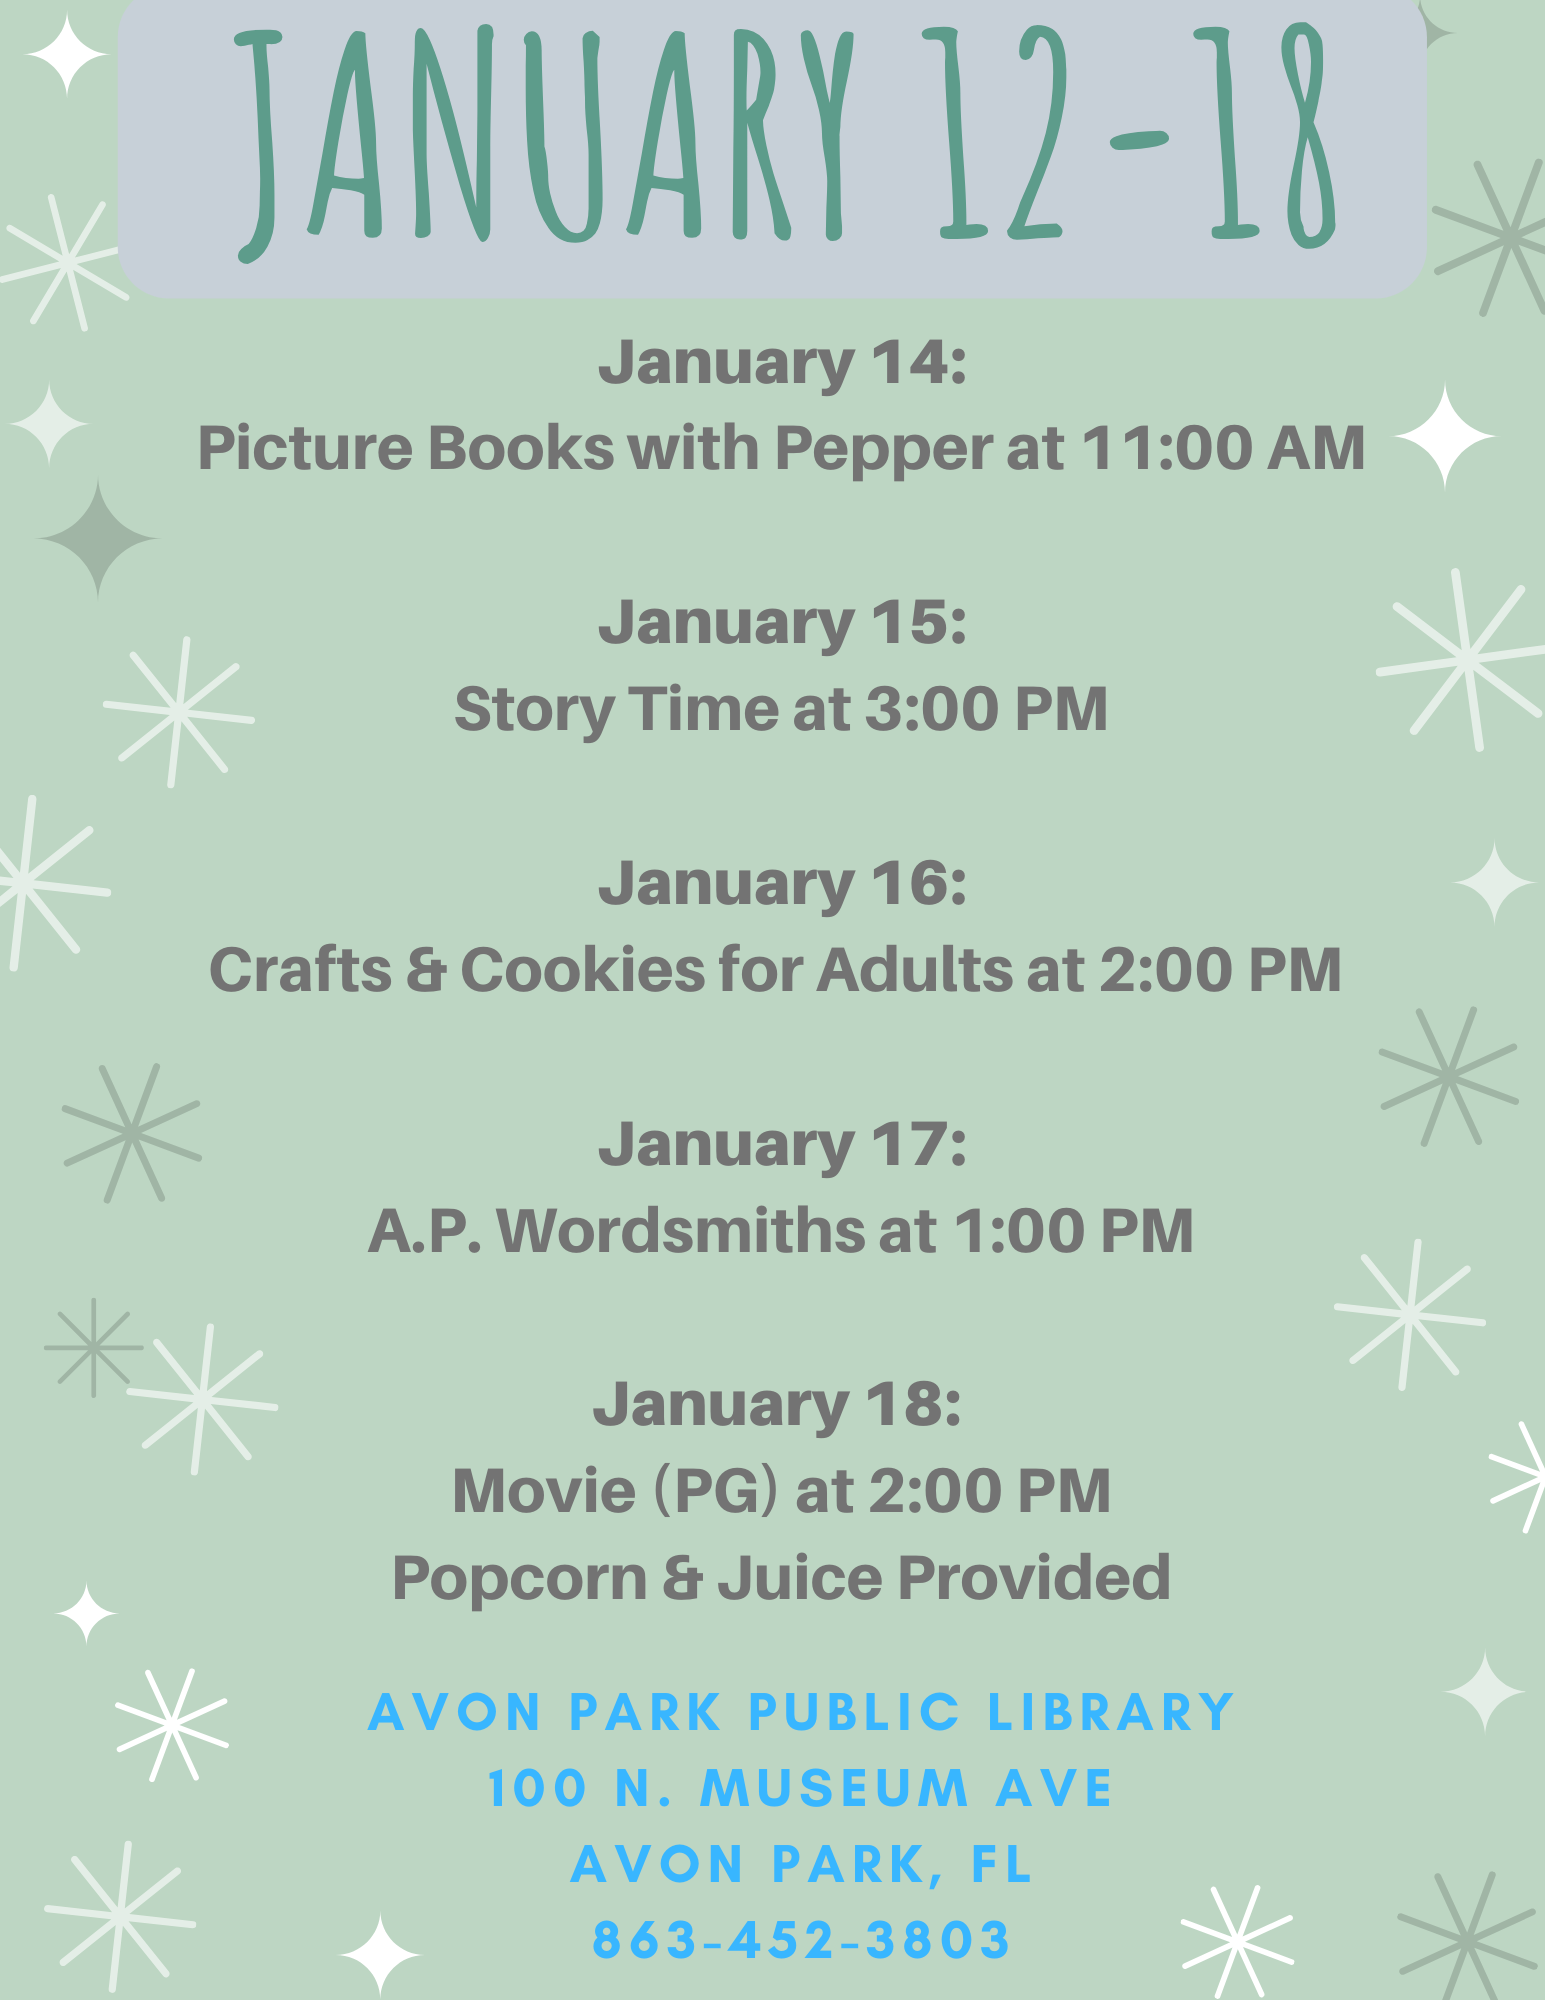 The events for January 12-18, 2020 at the Avon Park Public Library are as follows: January 14, 2020 at 11:00 AM will be Picture books with Pepper, a story time with a trained therapy dog. On January 15, 2020, we will have our regular story time at 3:00 PM. January 16 at 2:00 PM will be our crafts and cookies for adults. The Avon Park Wordsmiths will meet at 1:00 PM. Movie (PG) will be shown on January 18, 2020 at 2:00 PM. Call 863-452-3803 for questions.